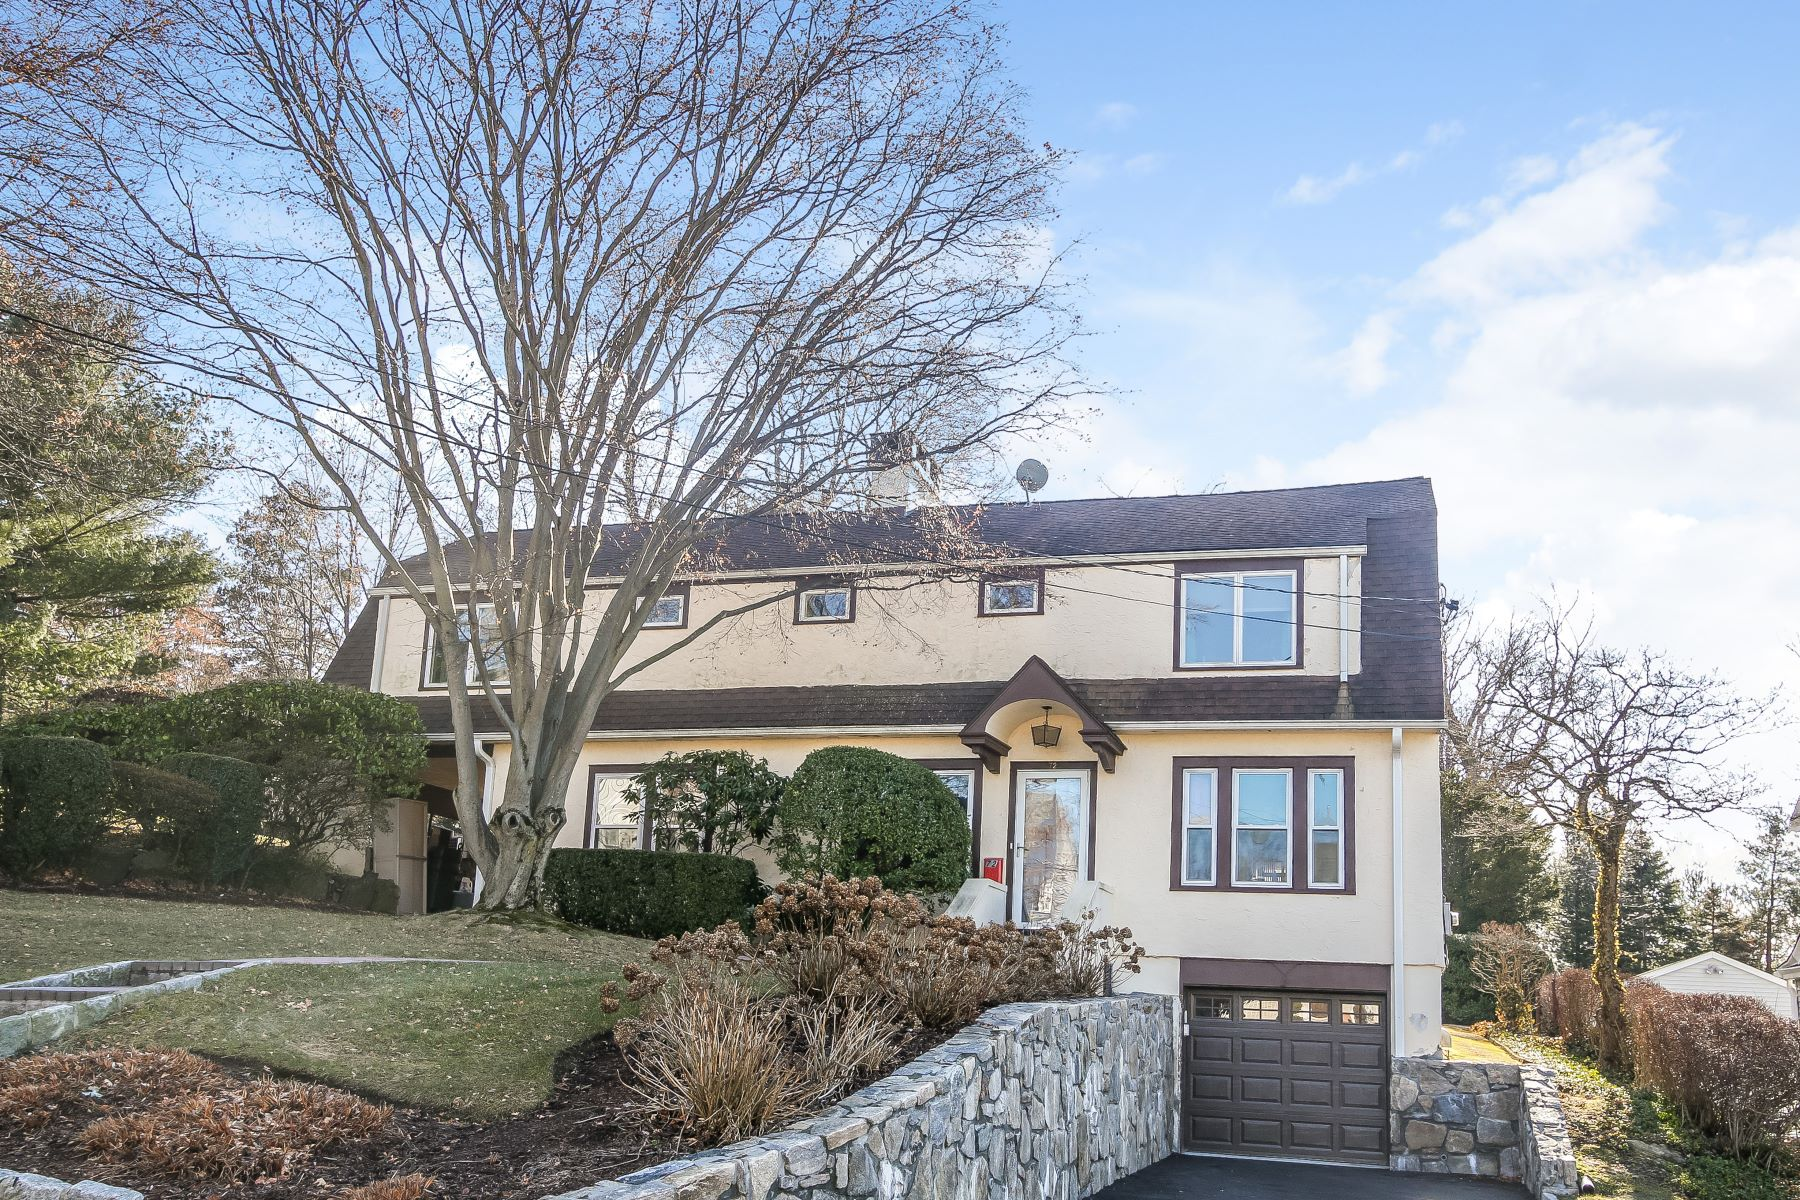 Single Family Home for Sale at Sunny Manor Woods Home 72 Lawton Avenue Hartsdale, New York 10530 United States